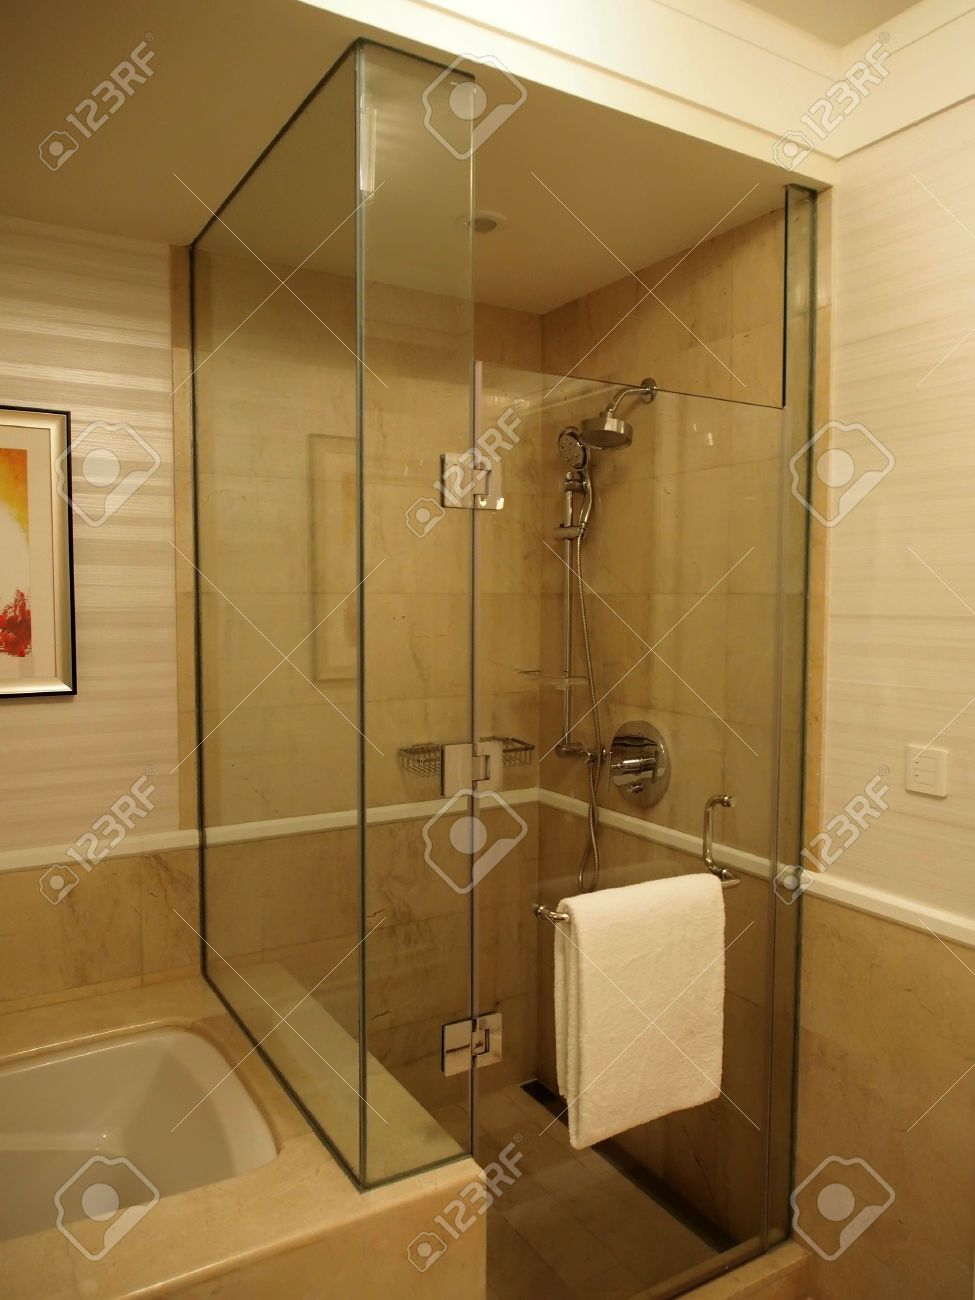 Picture of glass enclosed shower stall in bathroom stock photo, images and  stock photography.